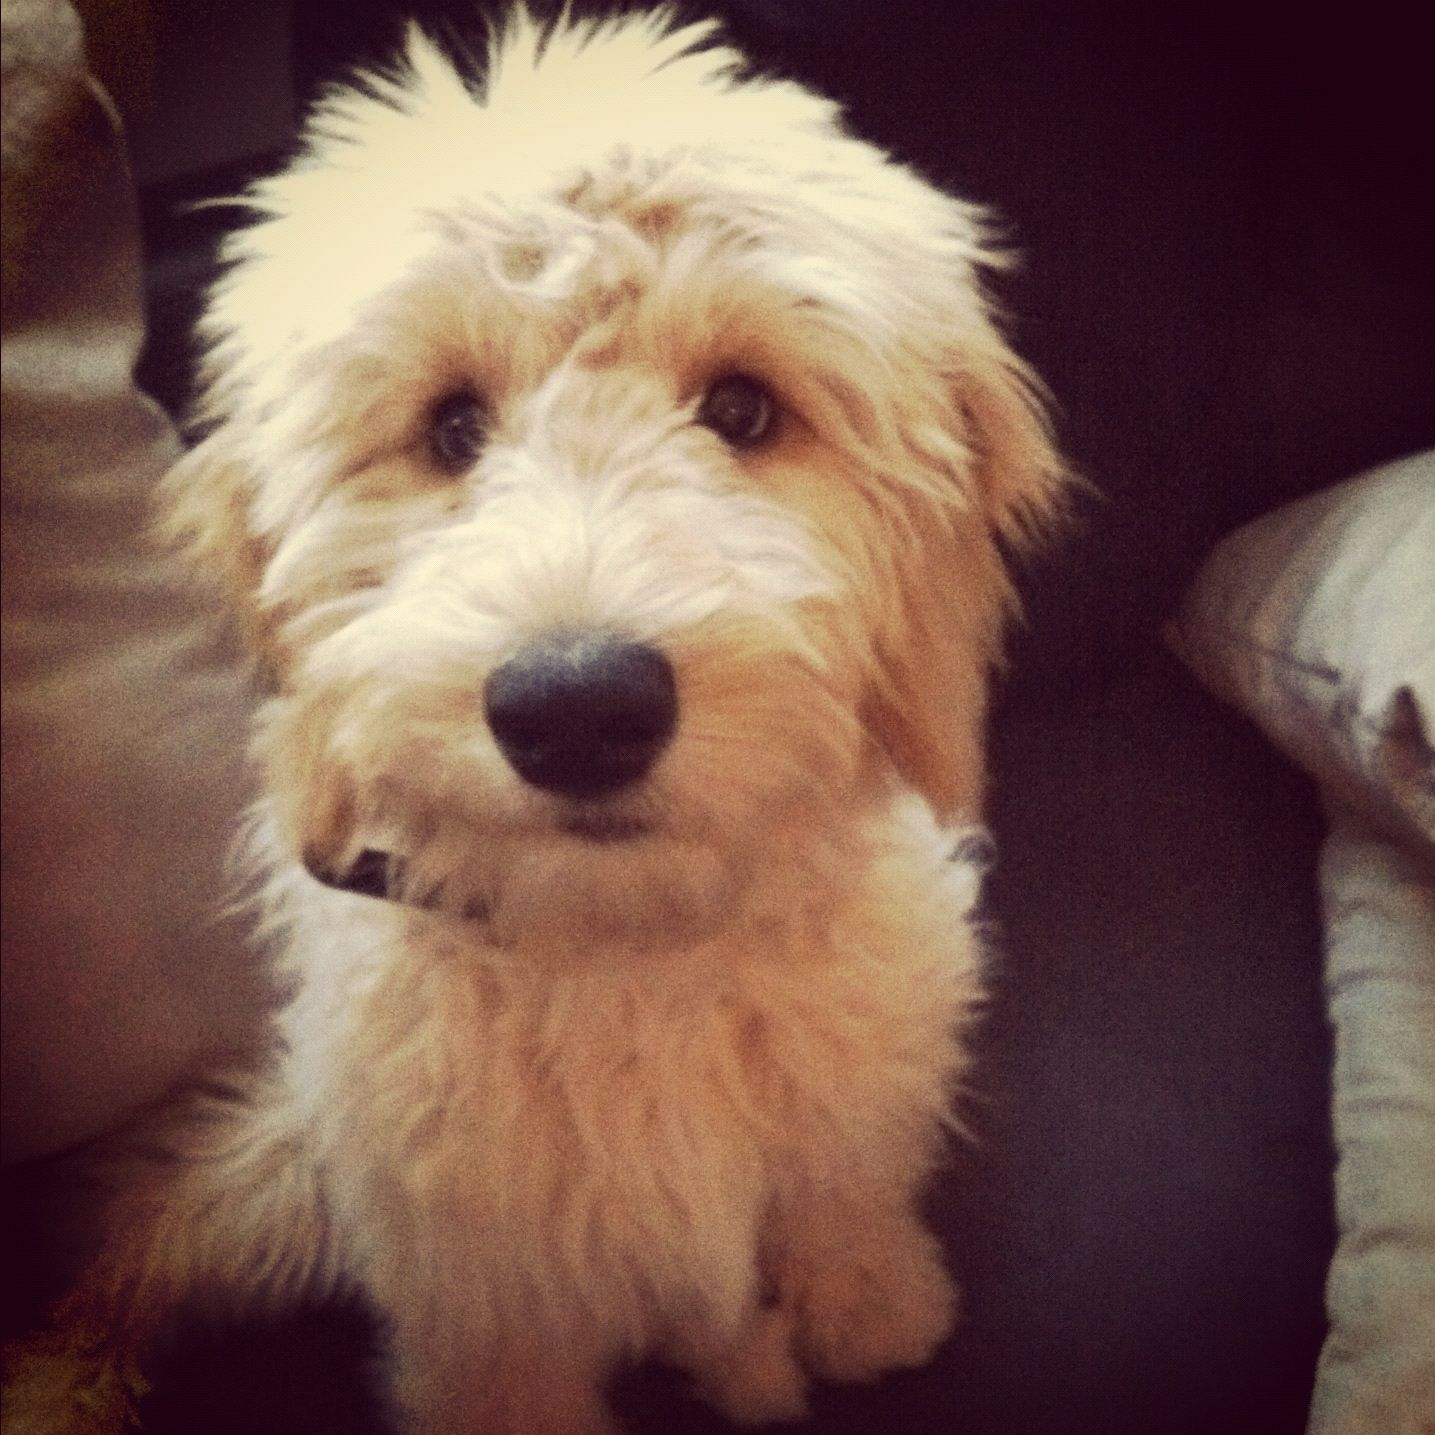 #Goldendoodle #goldendoodles #golden #doodle #puppy #fluffy #cute #adorable #dogs #monty